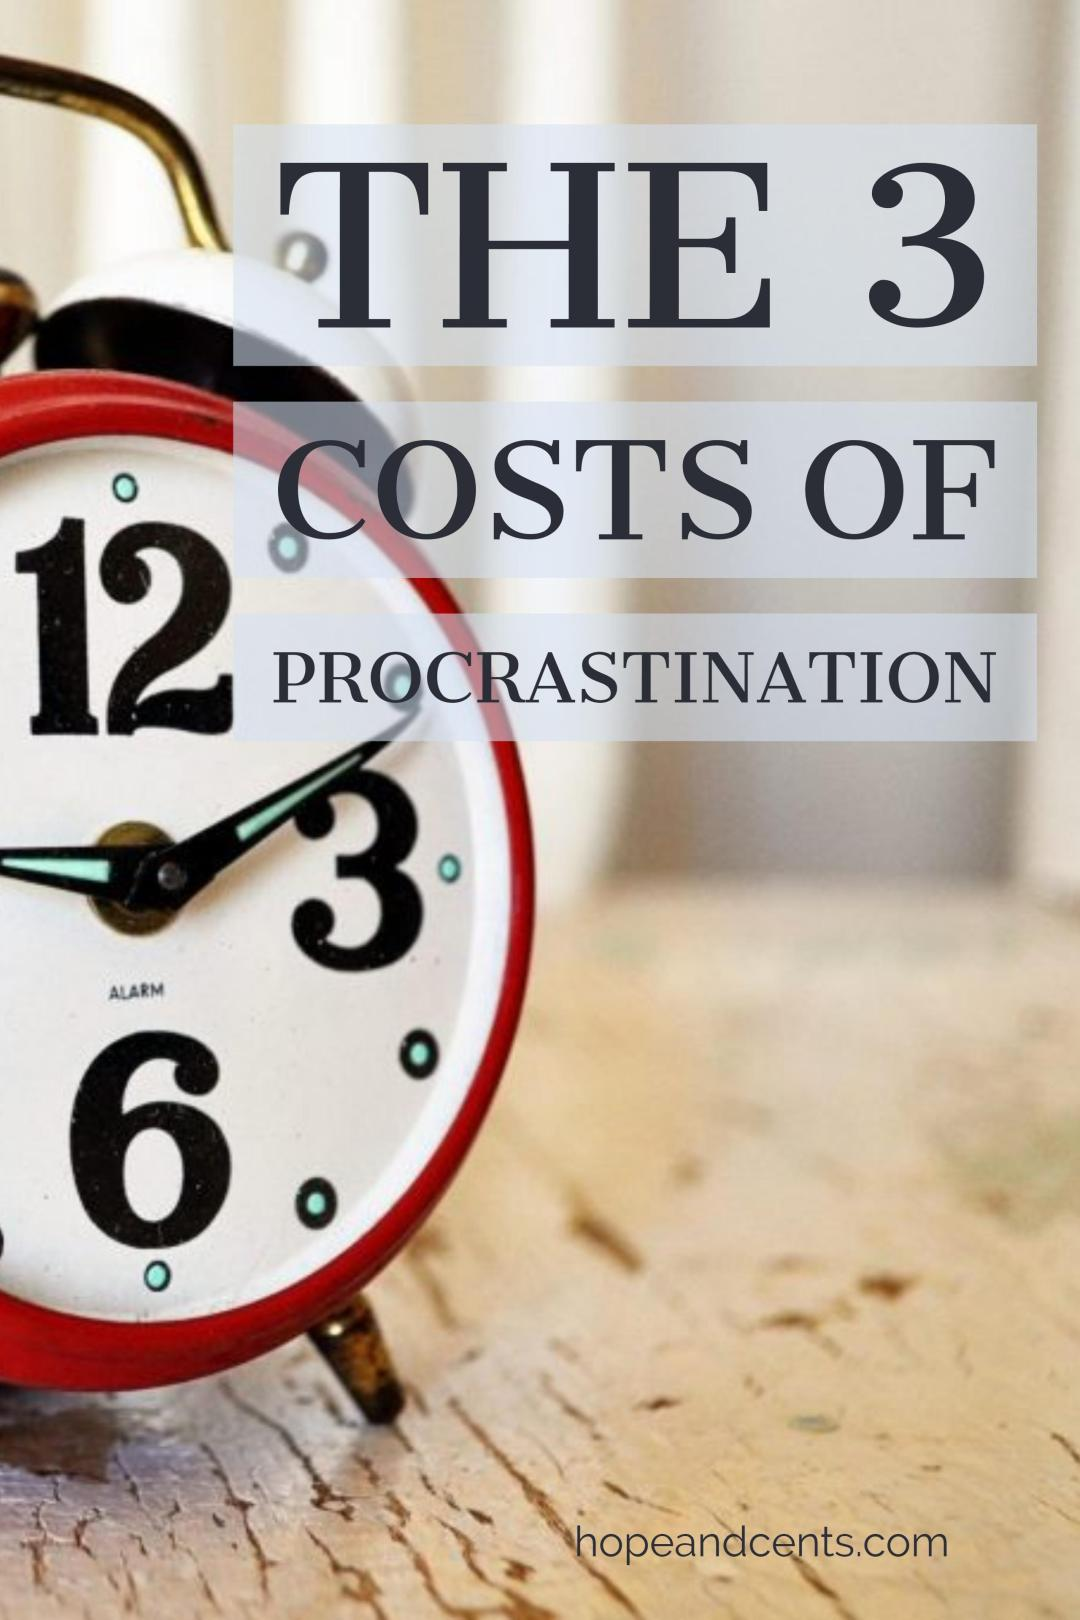 What's the busiest day of the week? Tomorrow. And the busiest time of the day? Later. Yes, we are always, always putting things off. But our procrastination comes with costs.